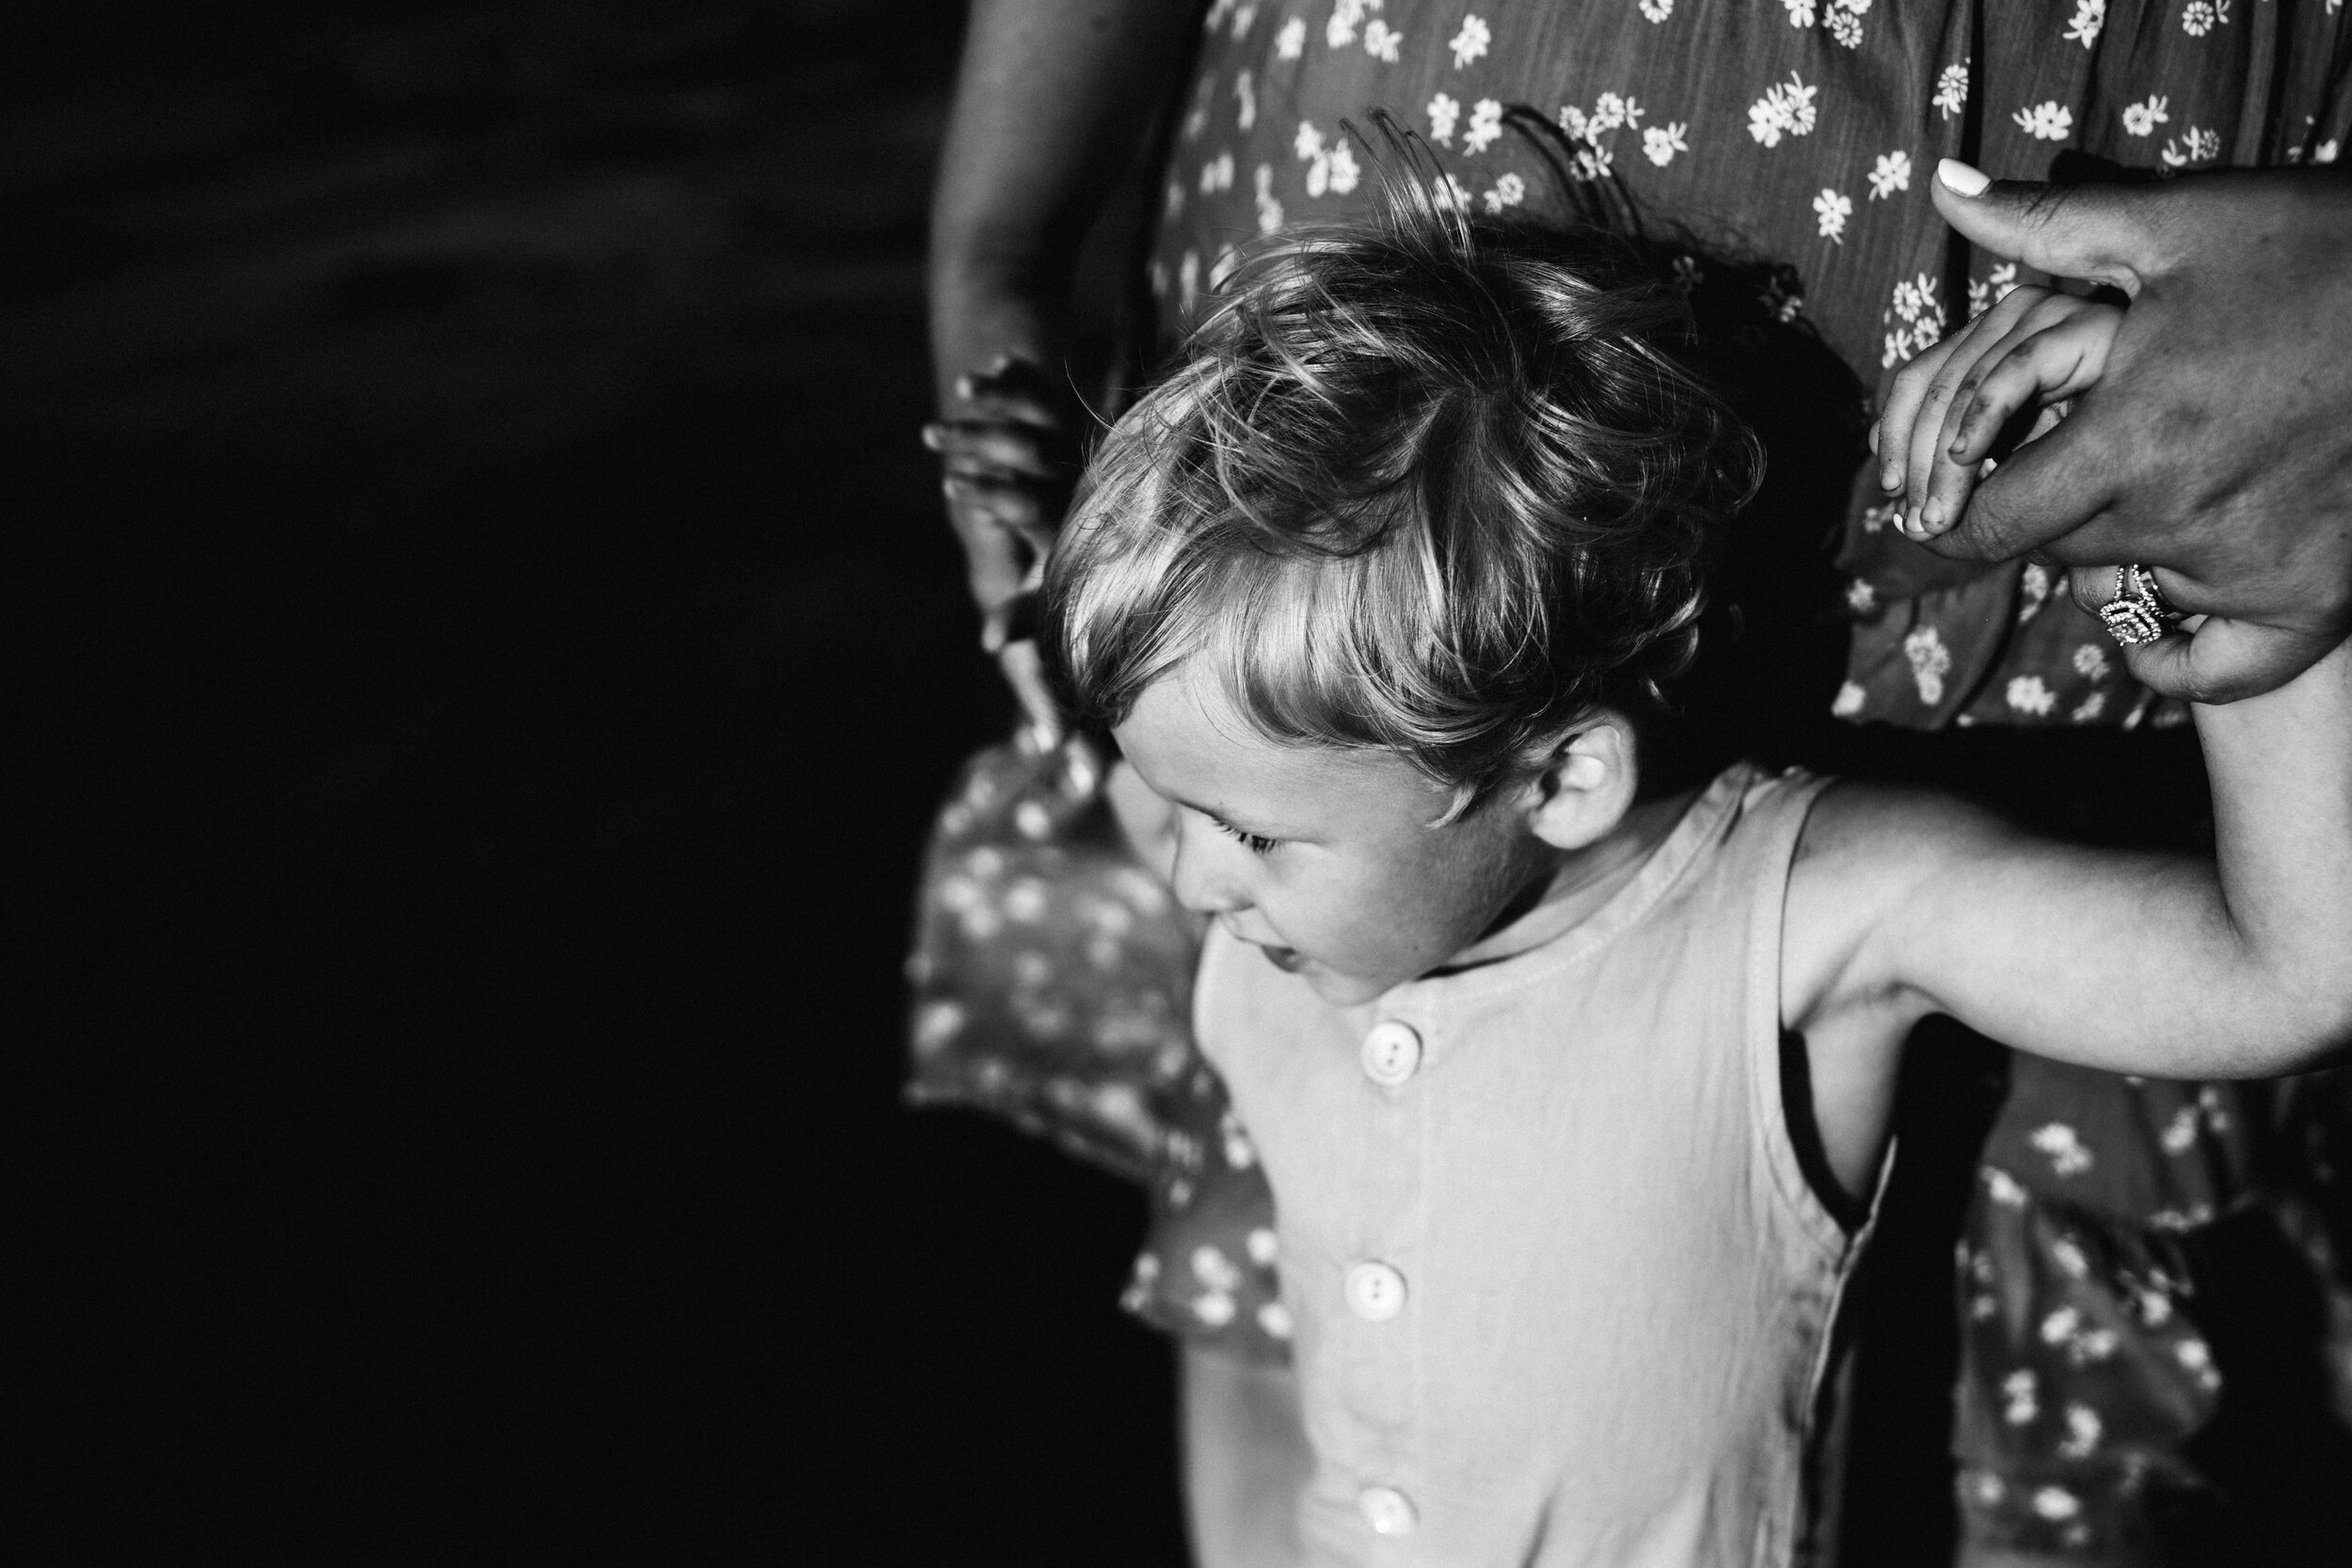 mother and son holding hands - Lindsay Petty Photography